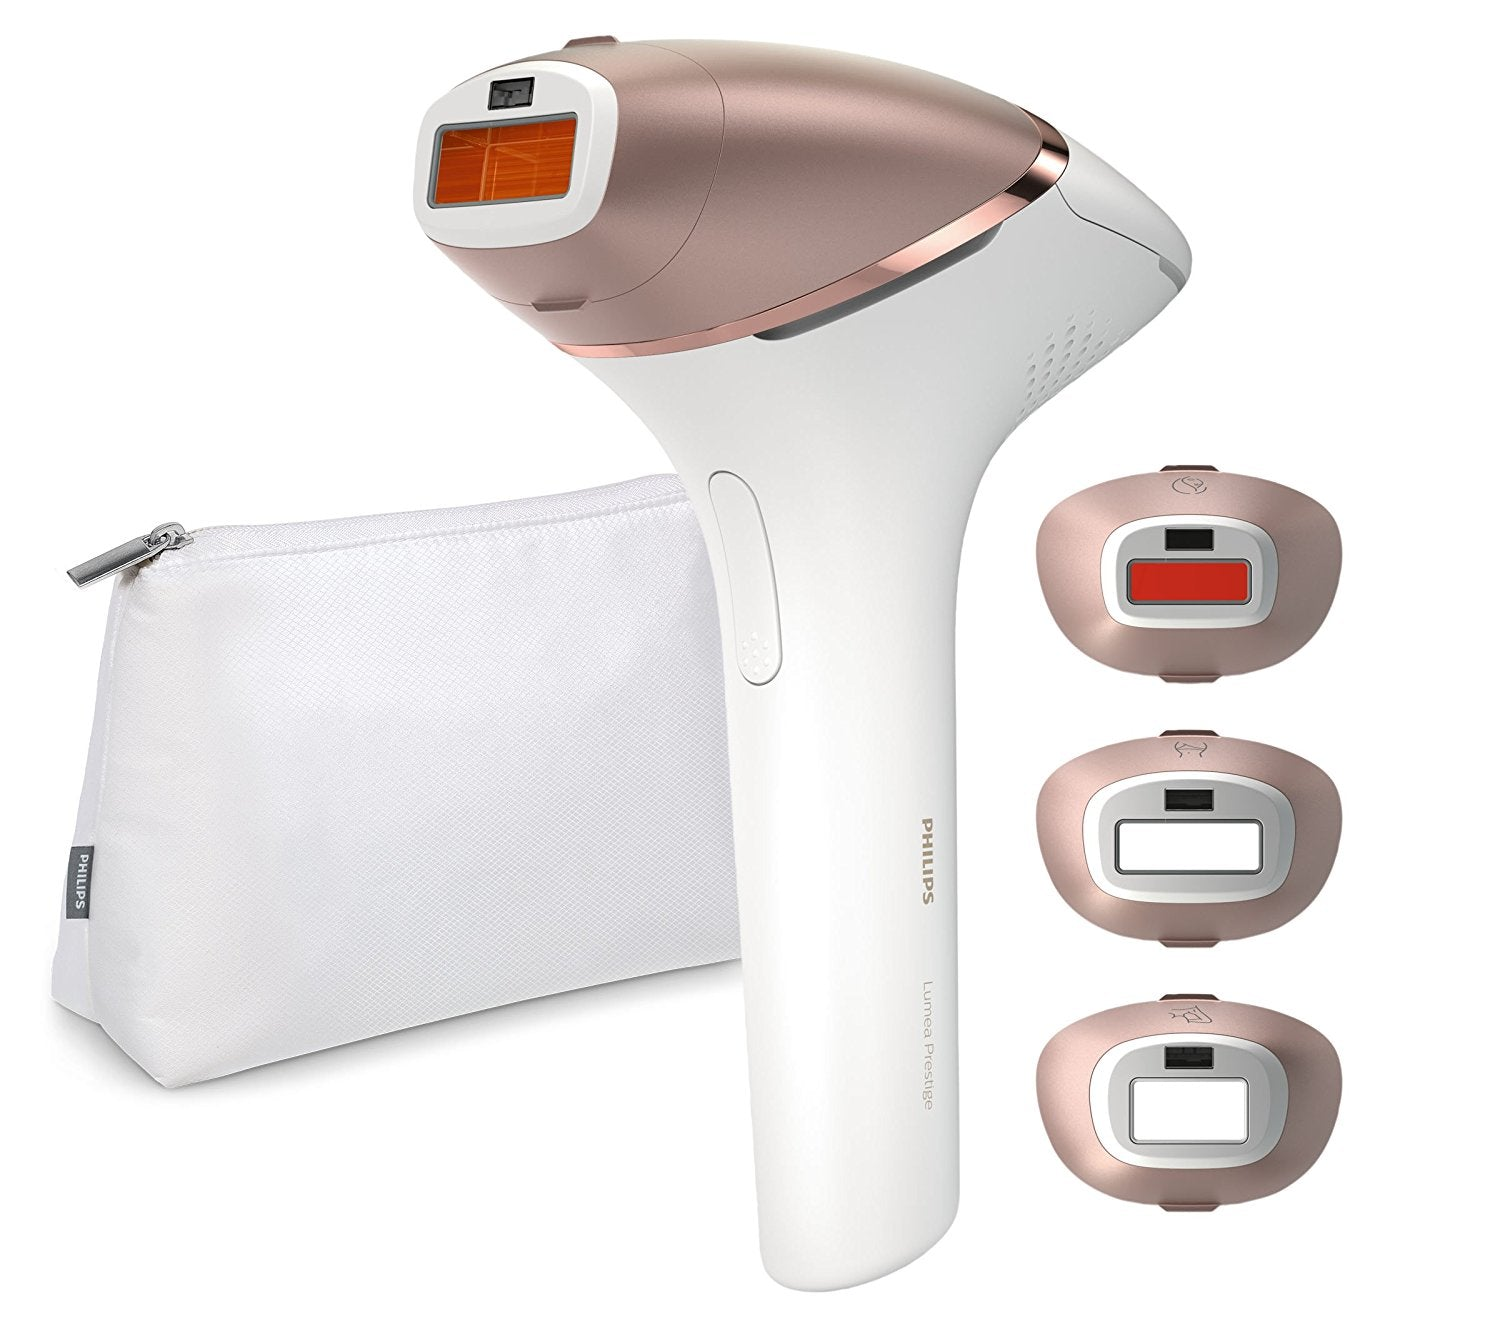 Philips Lumea BRI956 Prestige IPL Hair Removal for Body, Face and Bikini